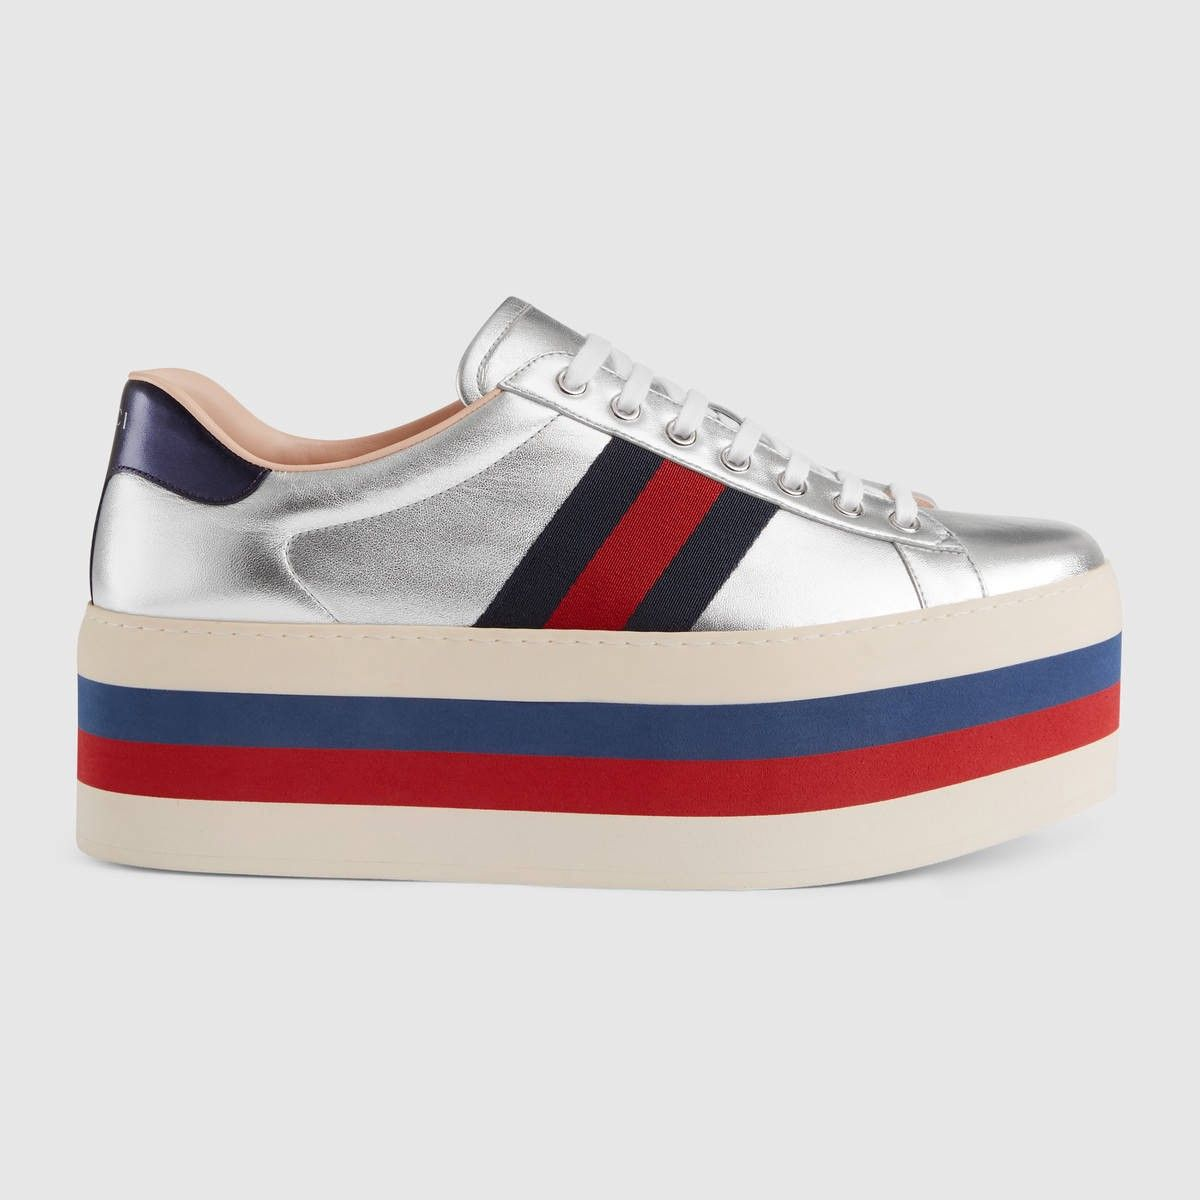 7d2837a5e31ba GUCCI Metallic platform sneaker - silver leather.  gucci  shoes ...